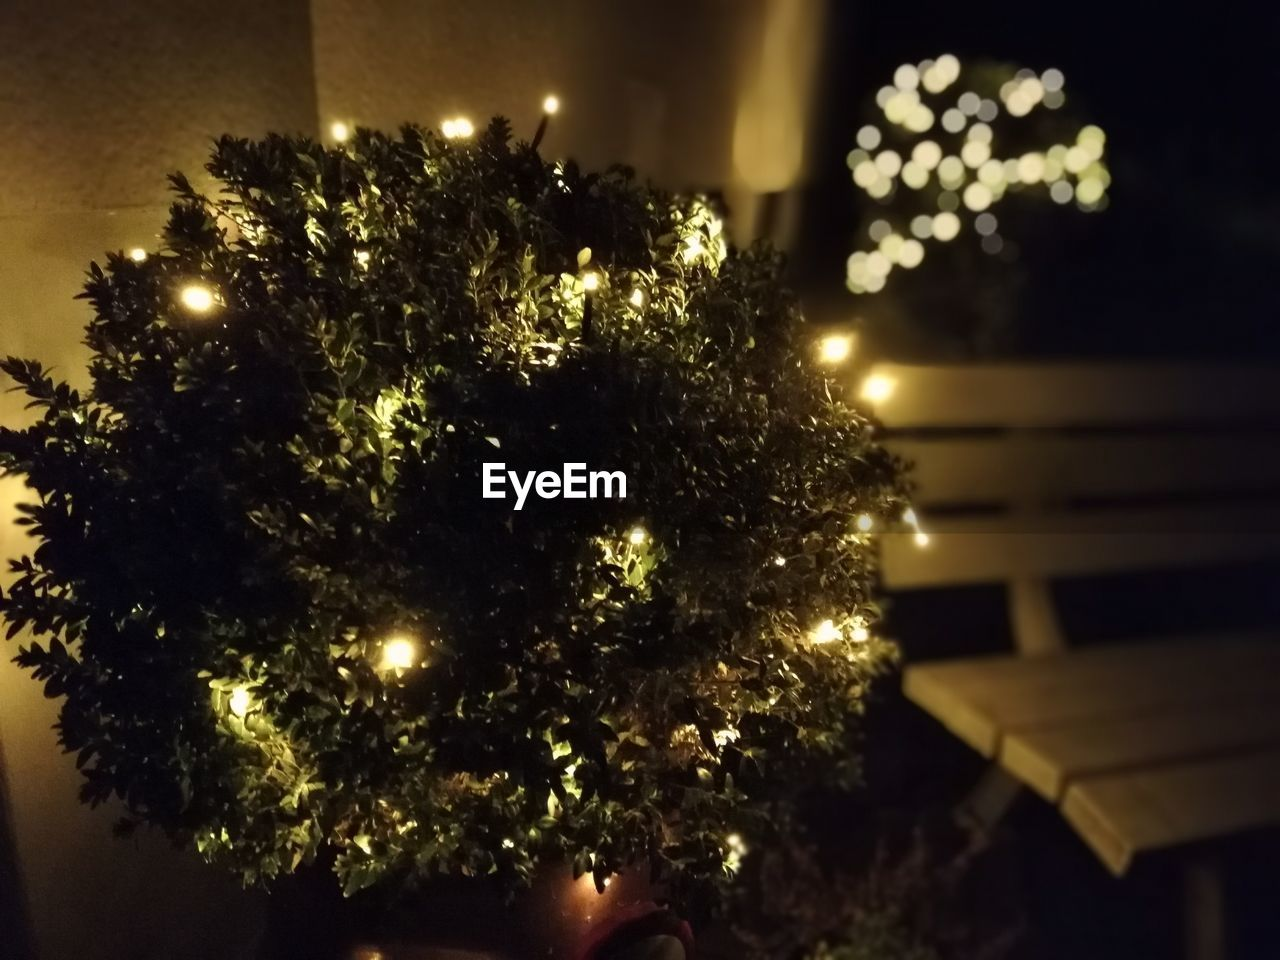 christmas, christmas tree, celebration, christmas decoration, illuminated, christmas lights, decoration, night, christmas ornament, tree, tradition, holiday - event, celebration event, lighting equipment, indoors, tree topper, focus on foreground, bauble, close-up, no people, christmas present